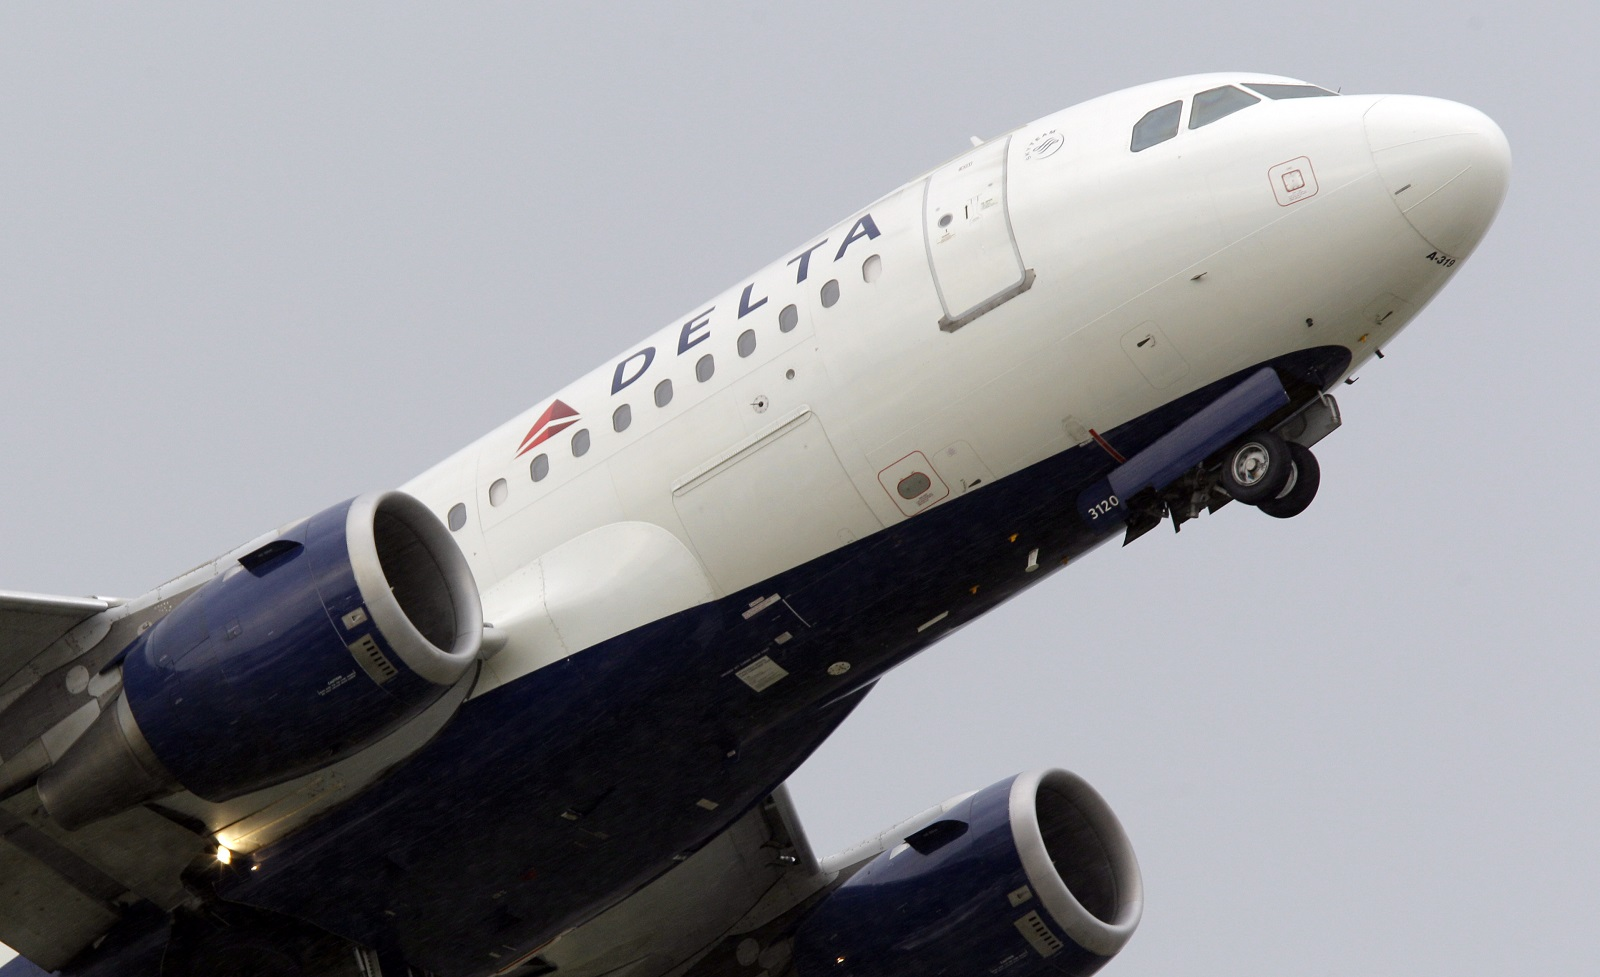 This might be the safest airline to fly during the coronavirus pandemic